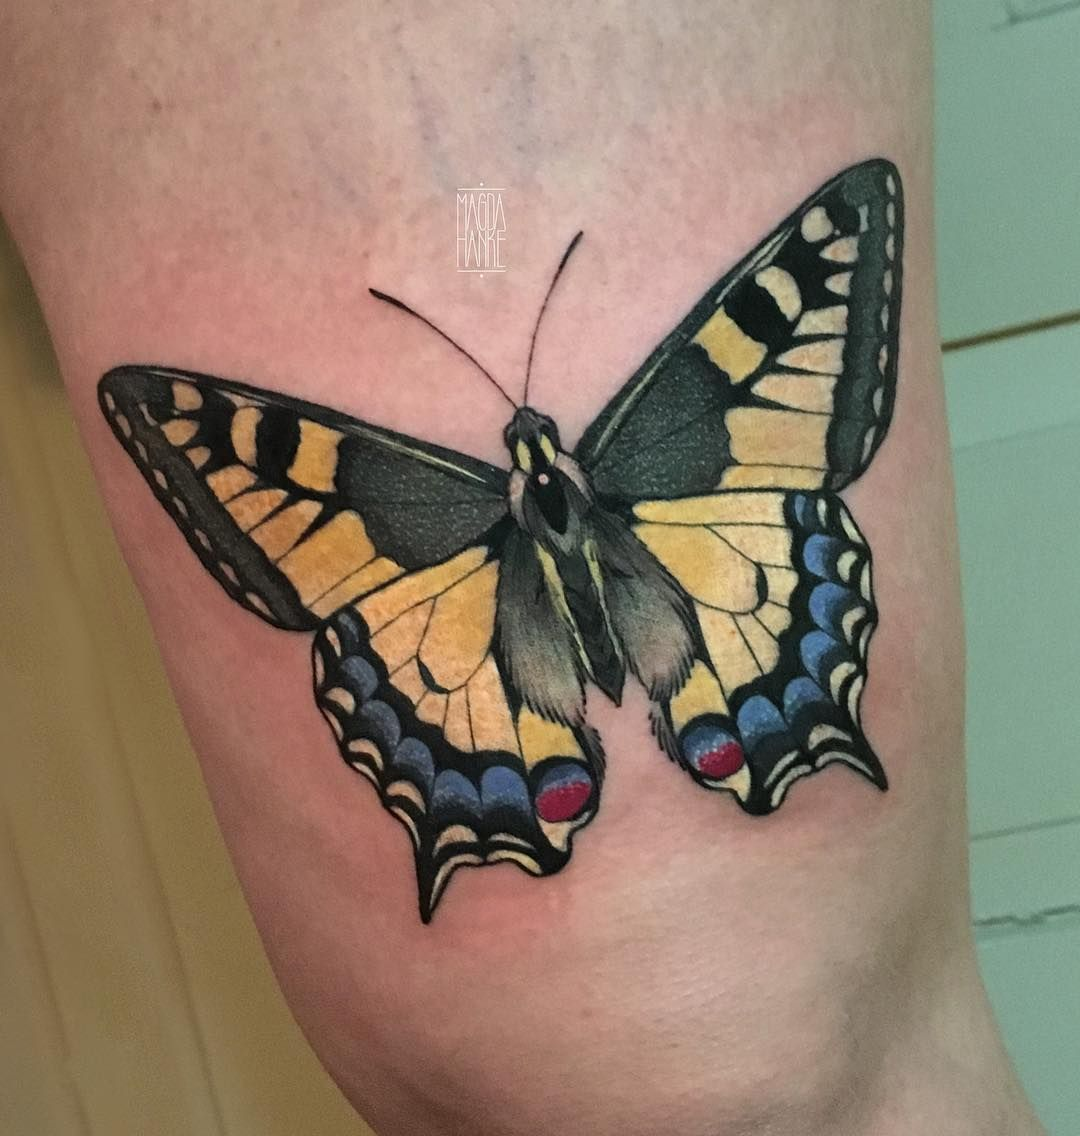 Butterfly Neo Traditional Tattoo Tattoo Ideas And Inspiration Magda Hanke Monarch Tattoo Neo Traditional Tattoo Butterfly Tattoo